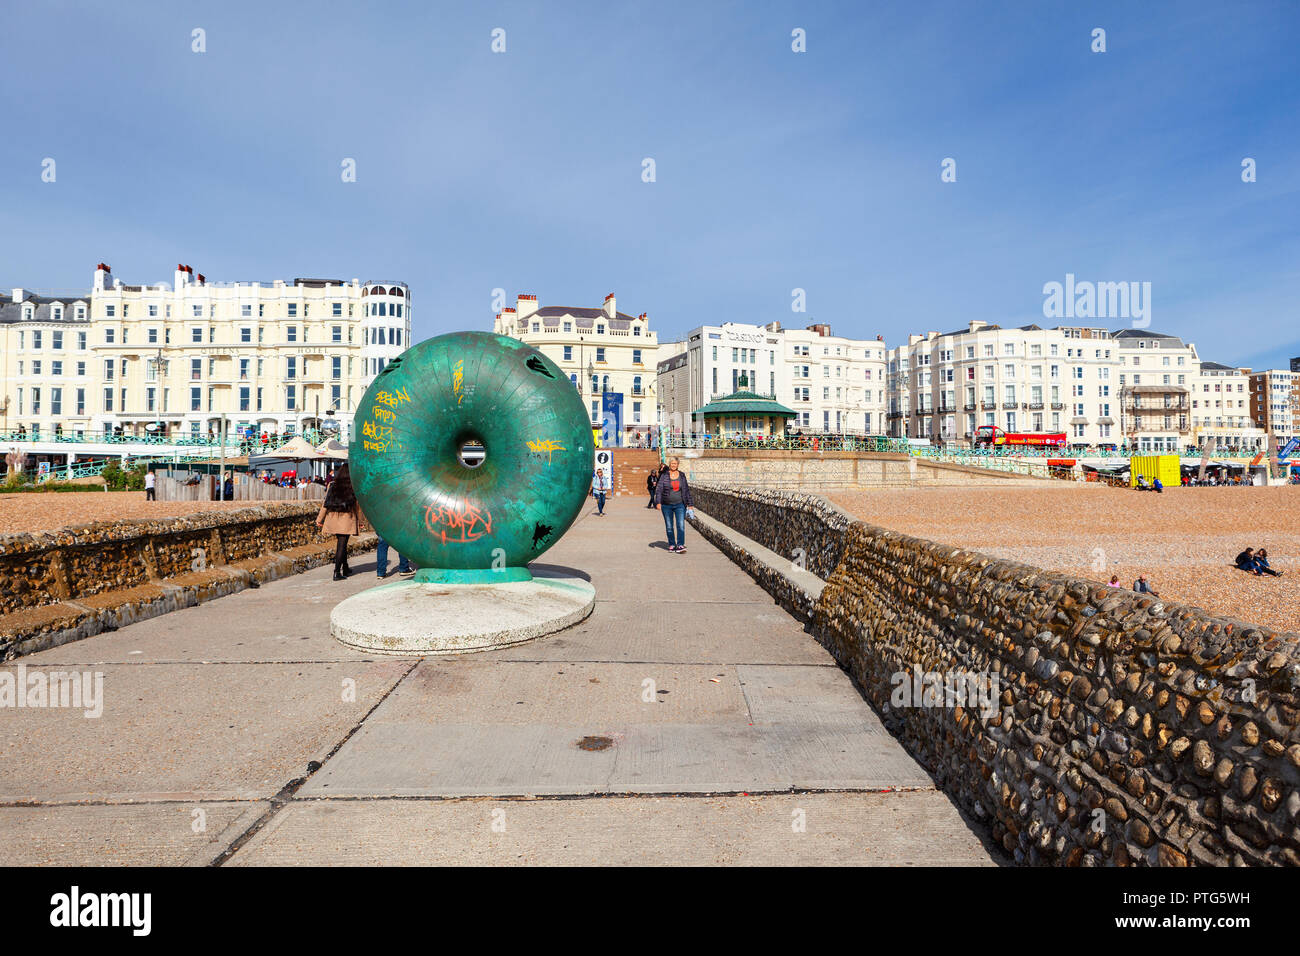 Brighton, England, October 07, 2018. View of Brighton beach behing the public artwork 'Afloat', circular donut shaped globe cast in bronze created by  - Stock Image